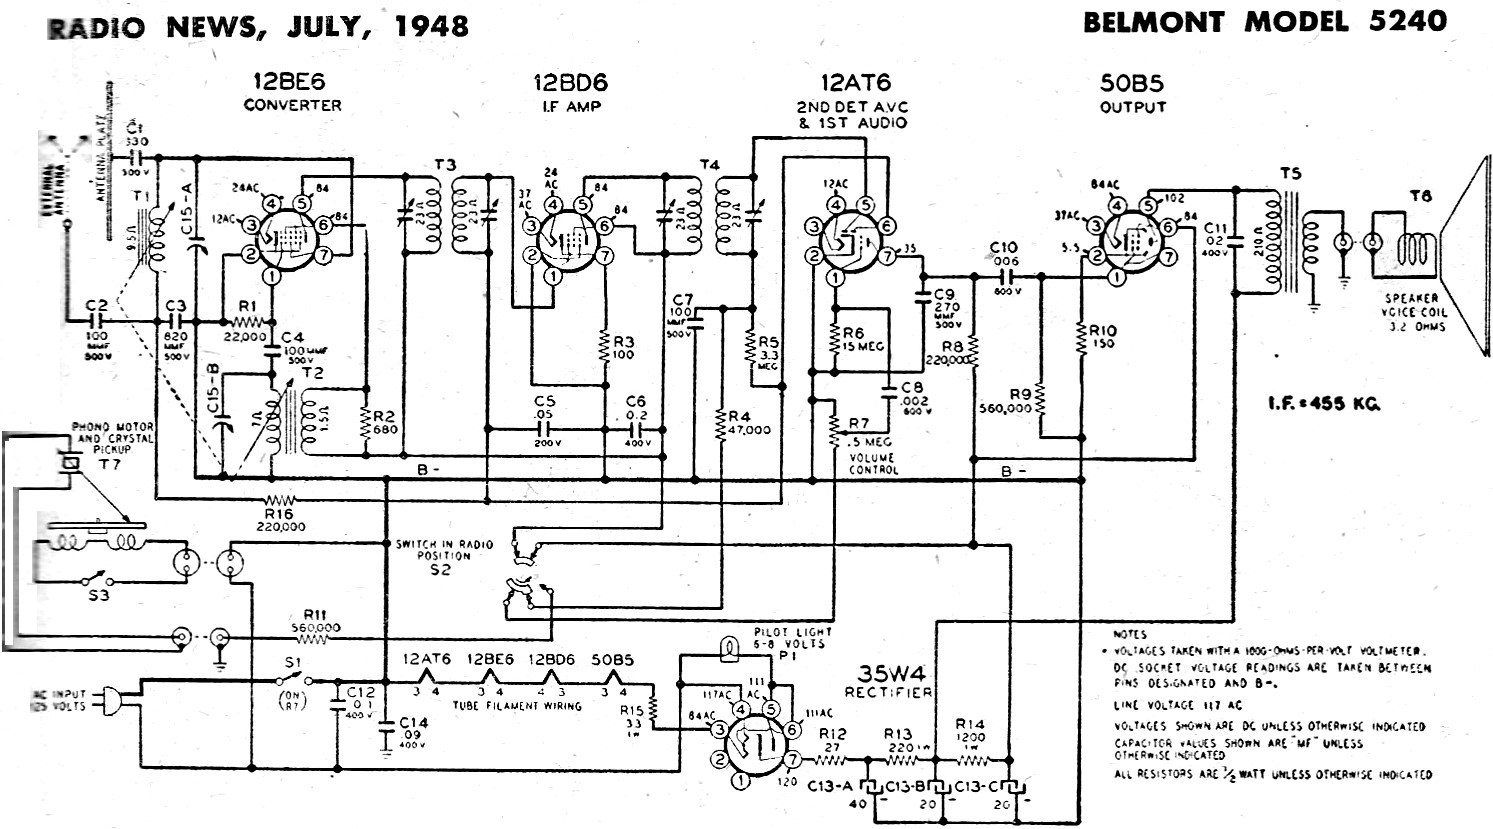 Belmont Model Schematic Amp Parts List July Radio News